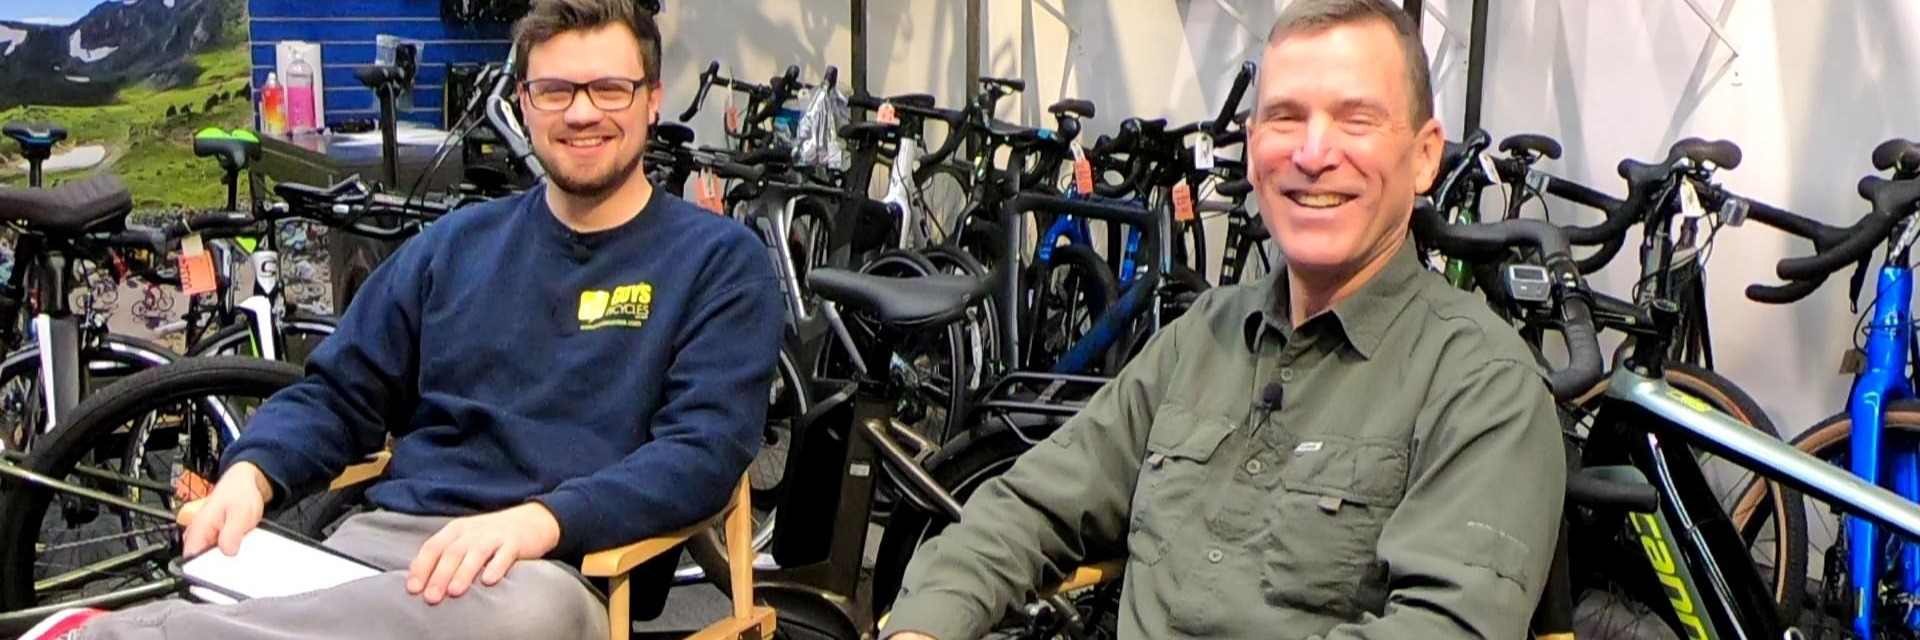 ebike interview with cardiac cycling